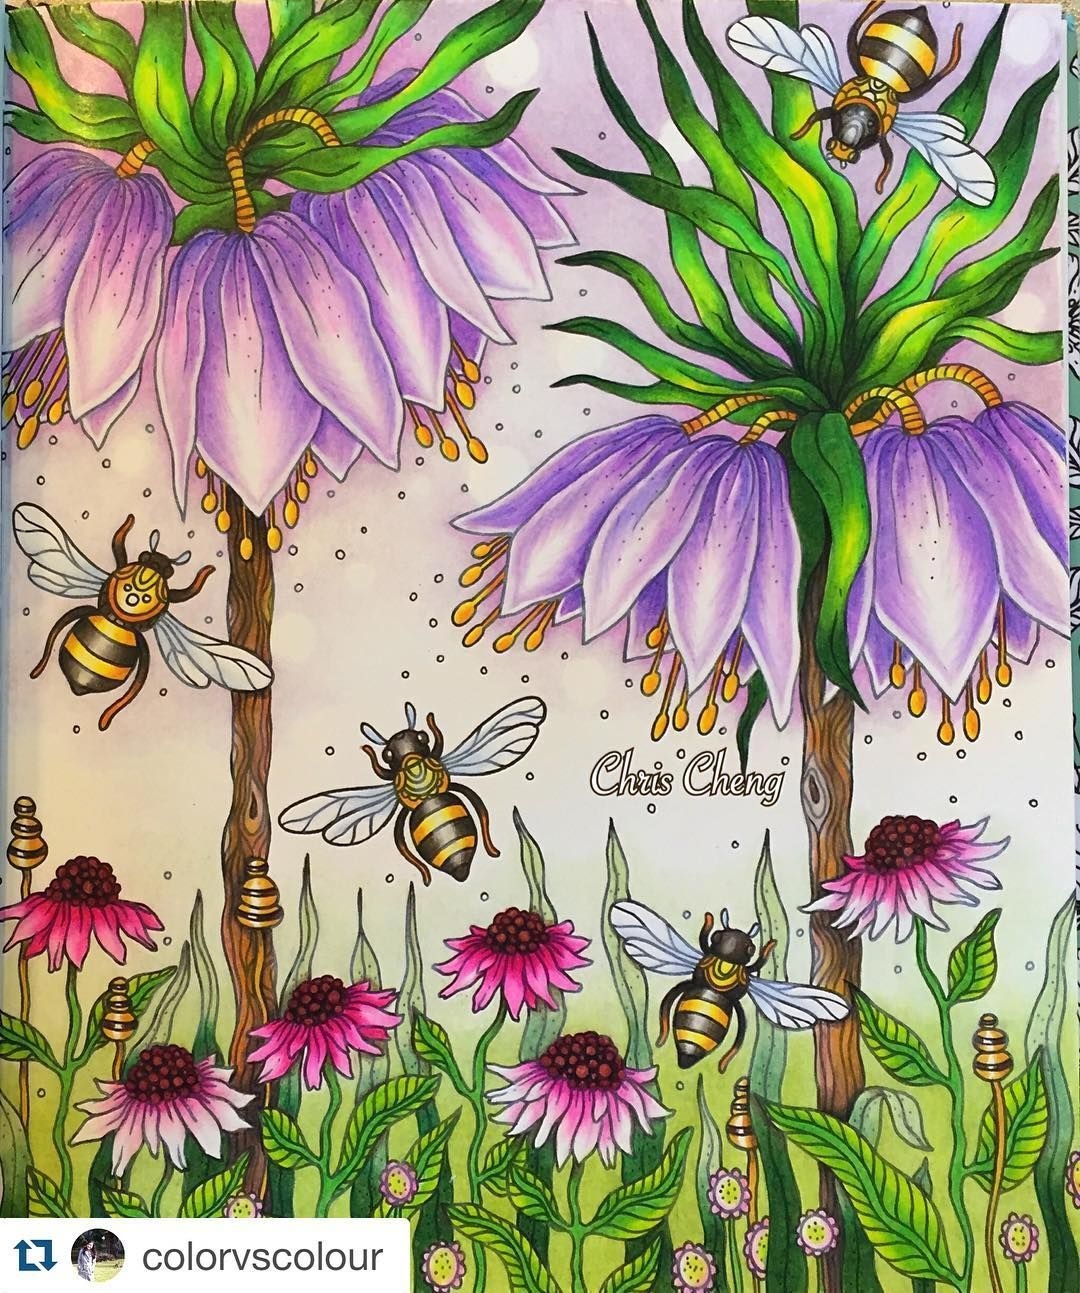 Summer garden coloring pages - Love This Bright And Colorful Summer Garden Dont You Its Colored By Colorvscolour If You Want To Get More Inspiration For Your Own Coloring Take